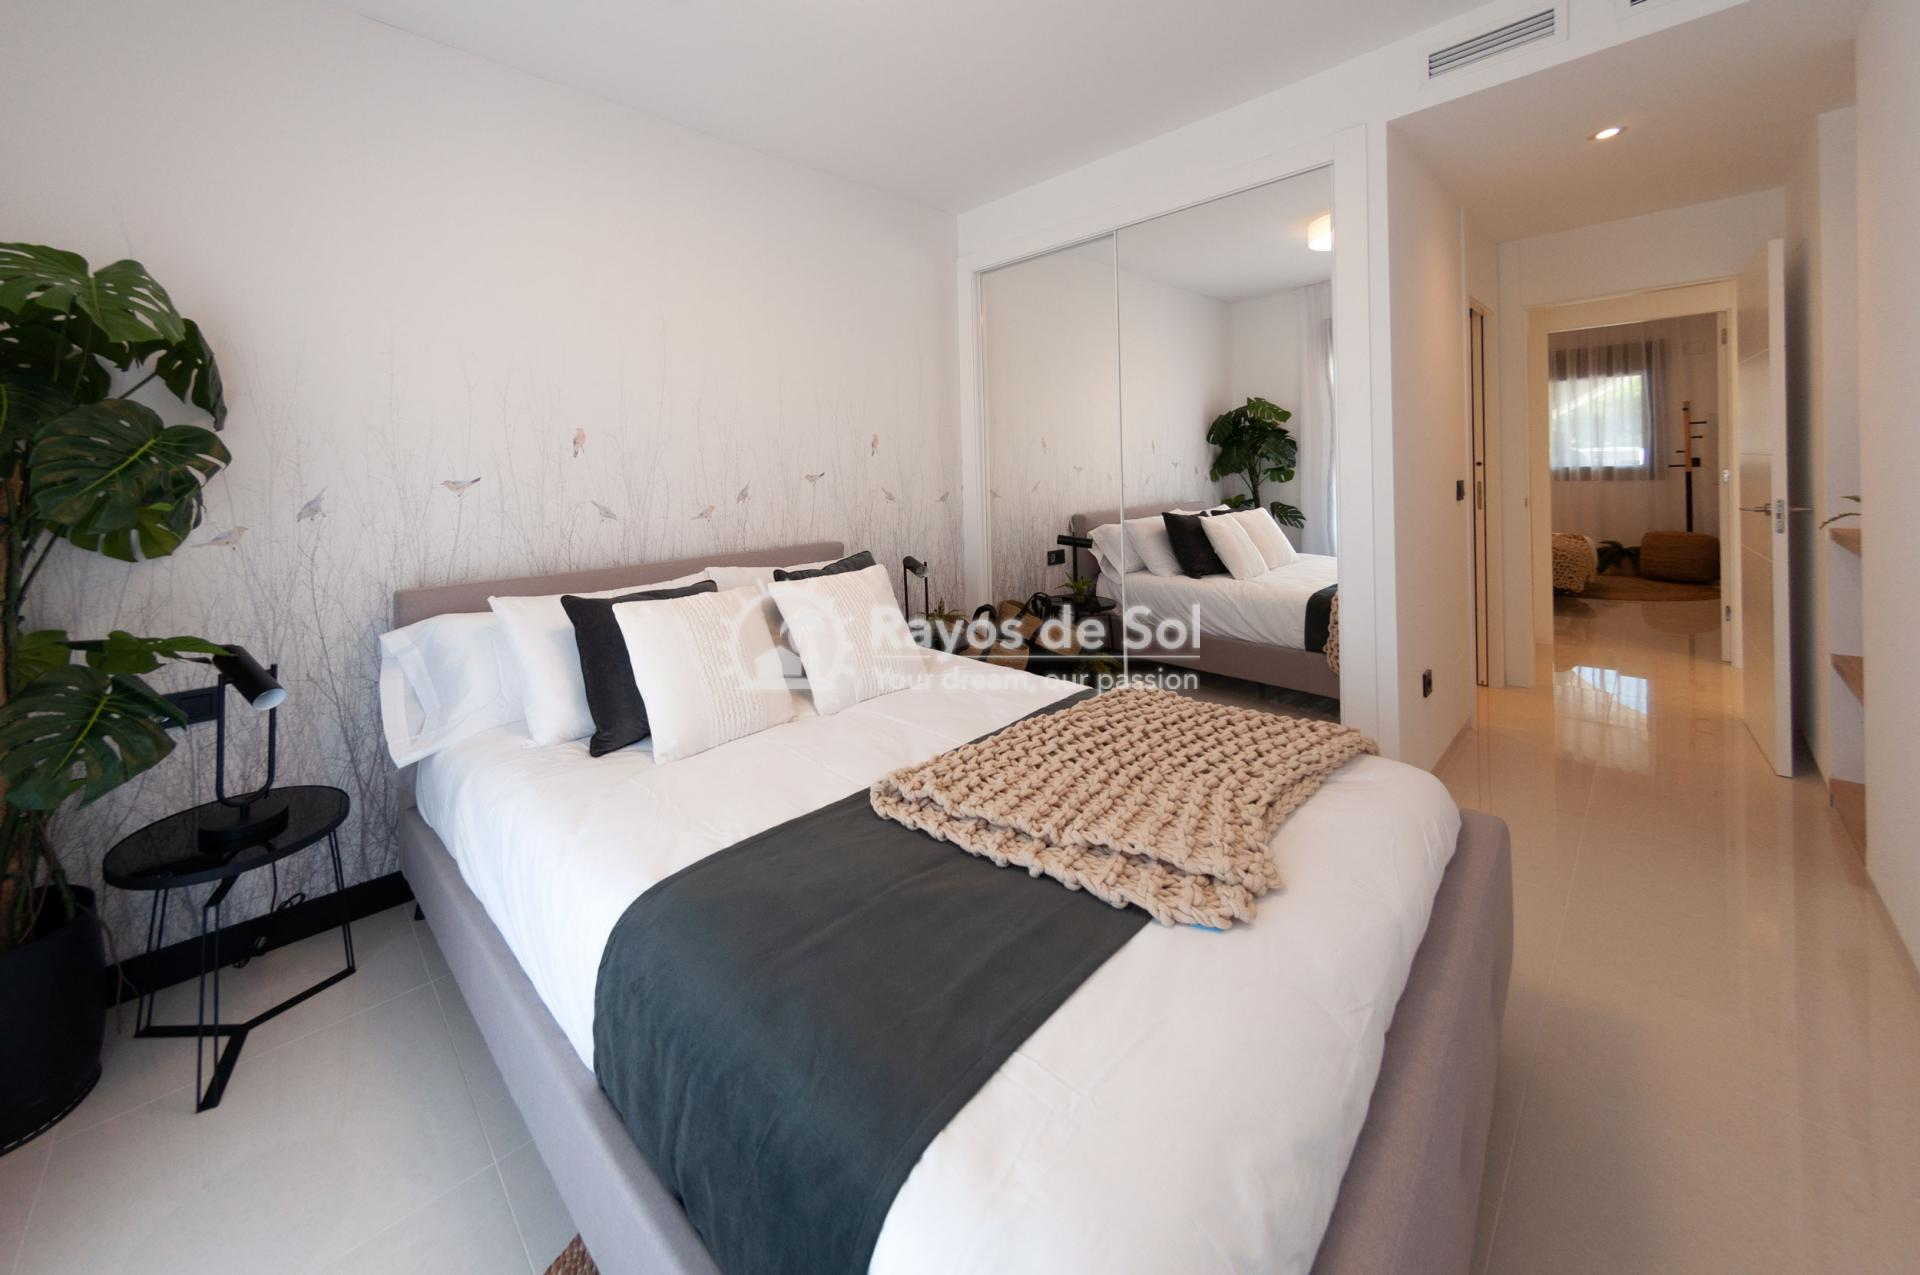 Beach apartments  in Guardamar del Segura, Costa Blanca (Mare-Nostrum-apt3) - 6